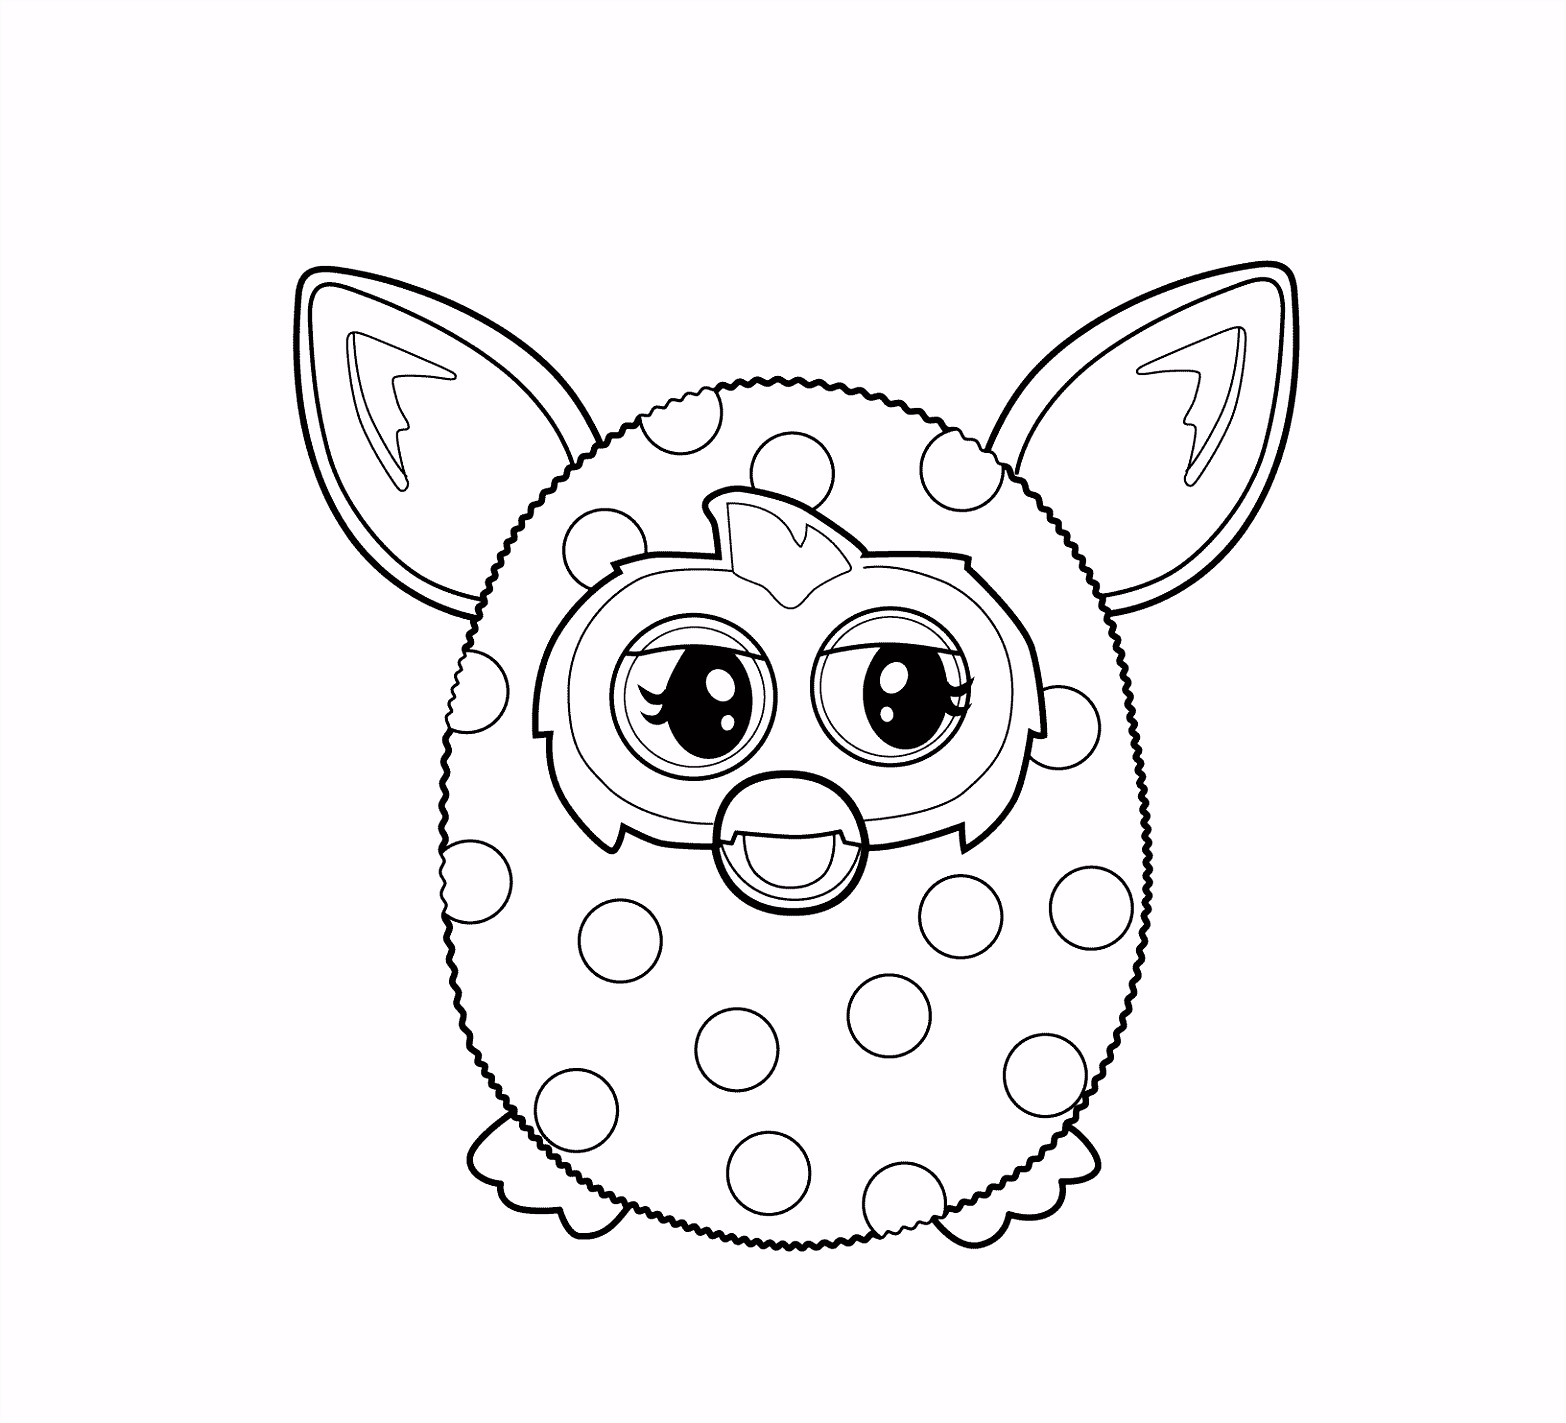 Furby coloring pages for kids printable free